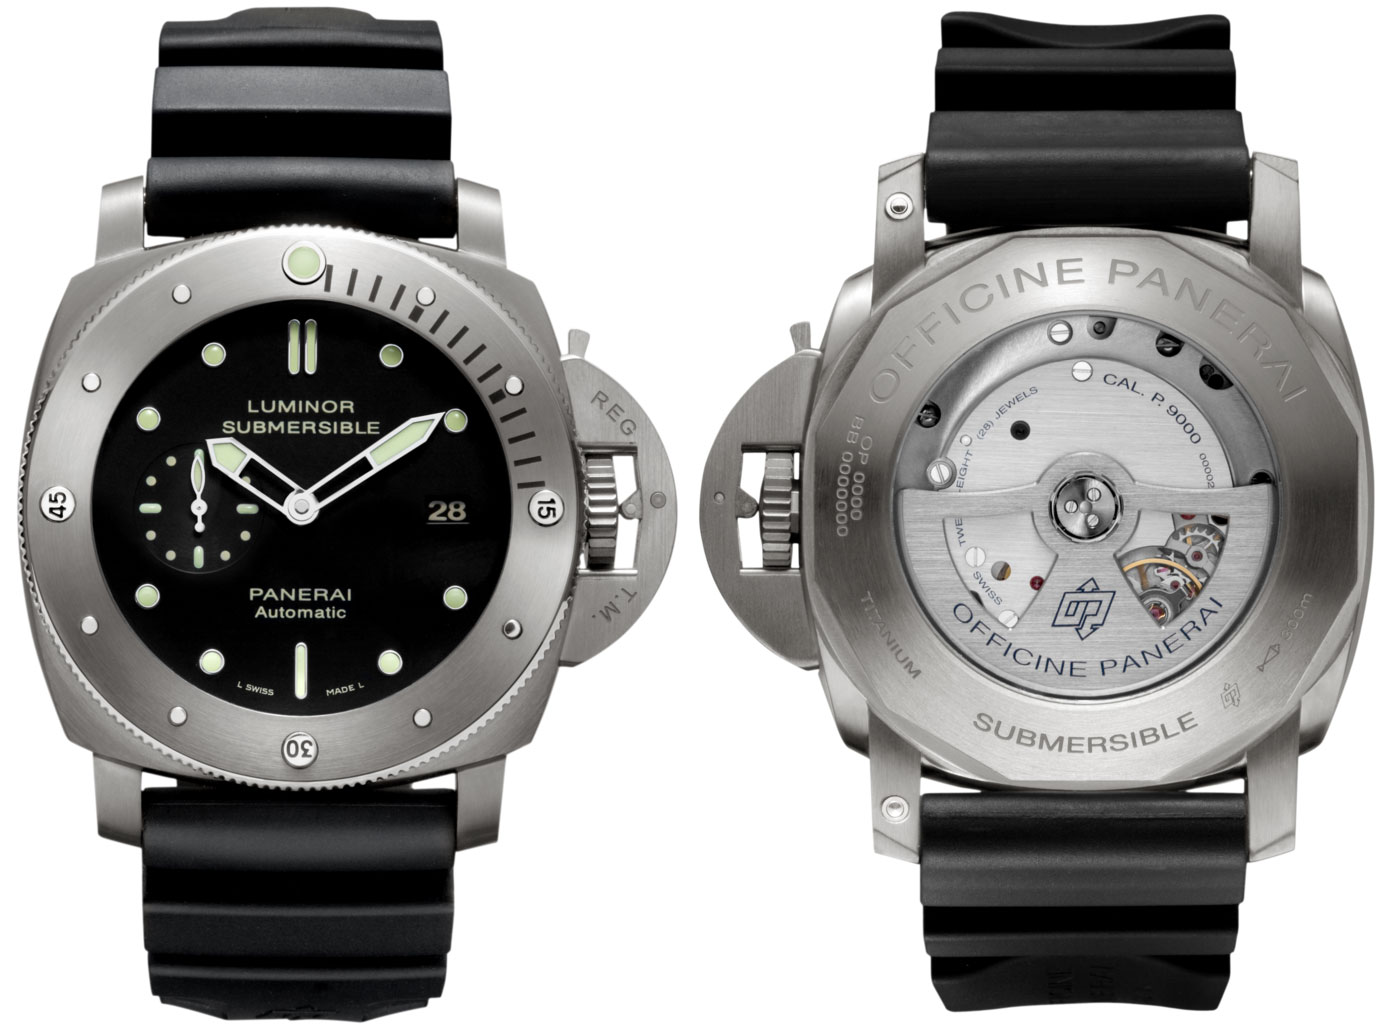 london on all acciaio brand sale logo uk watches panerai image in buy luminor base